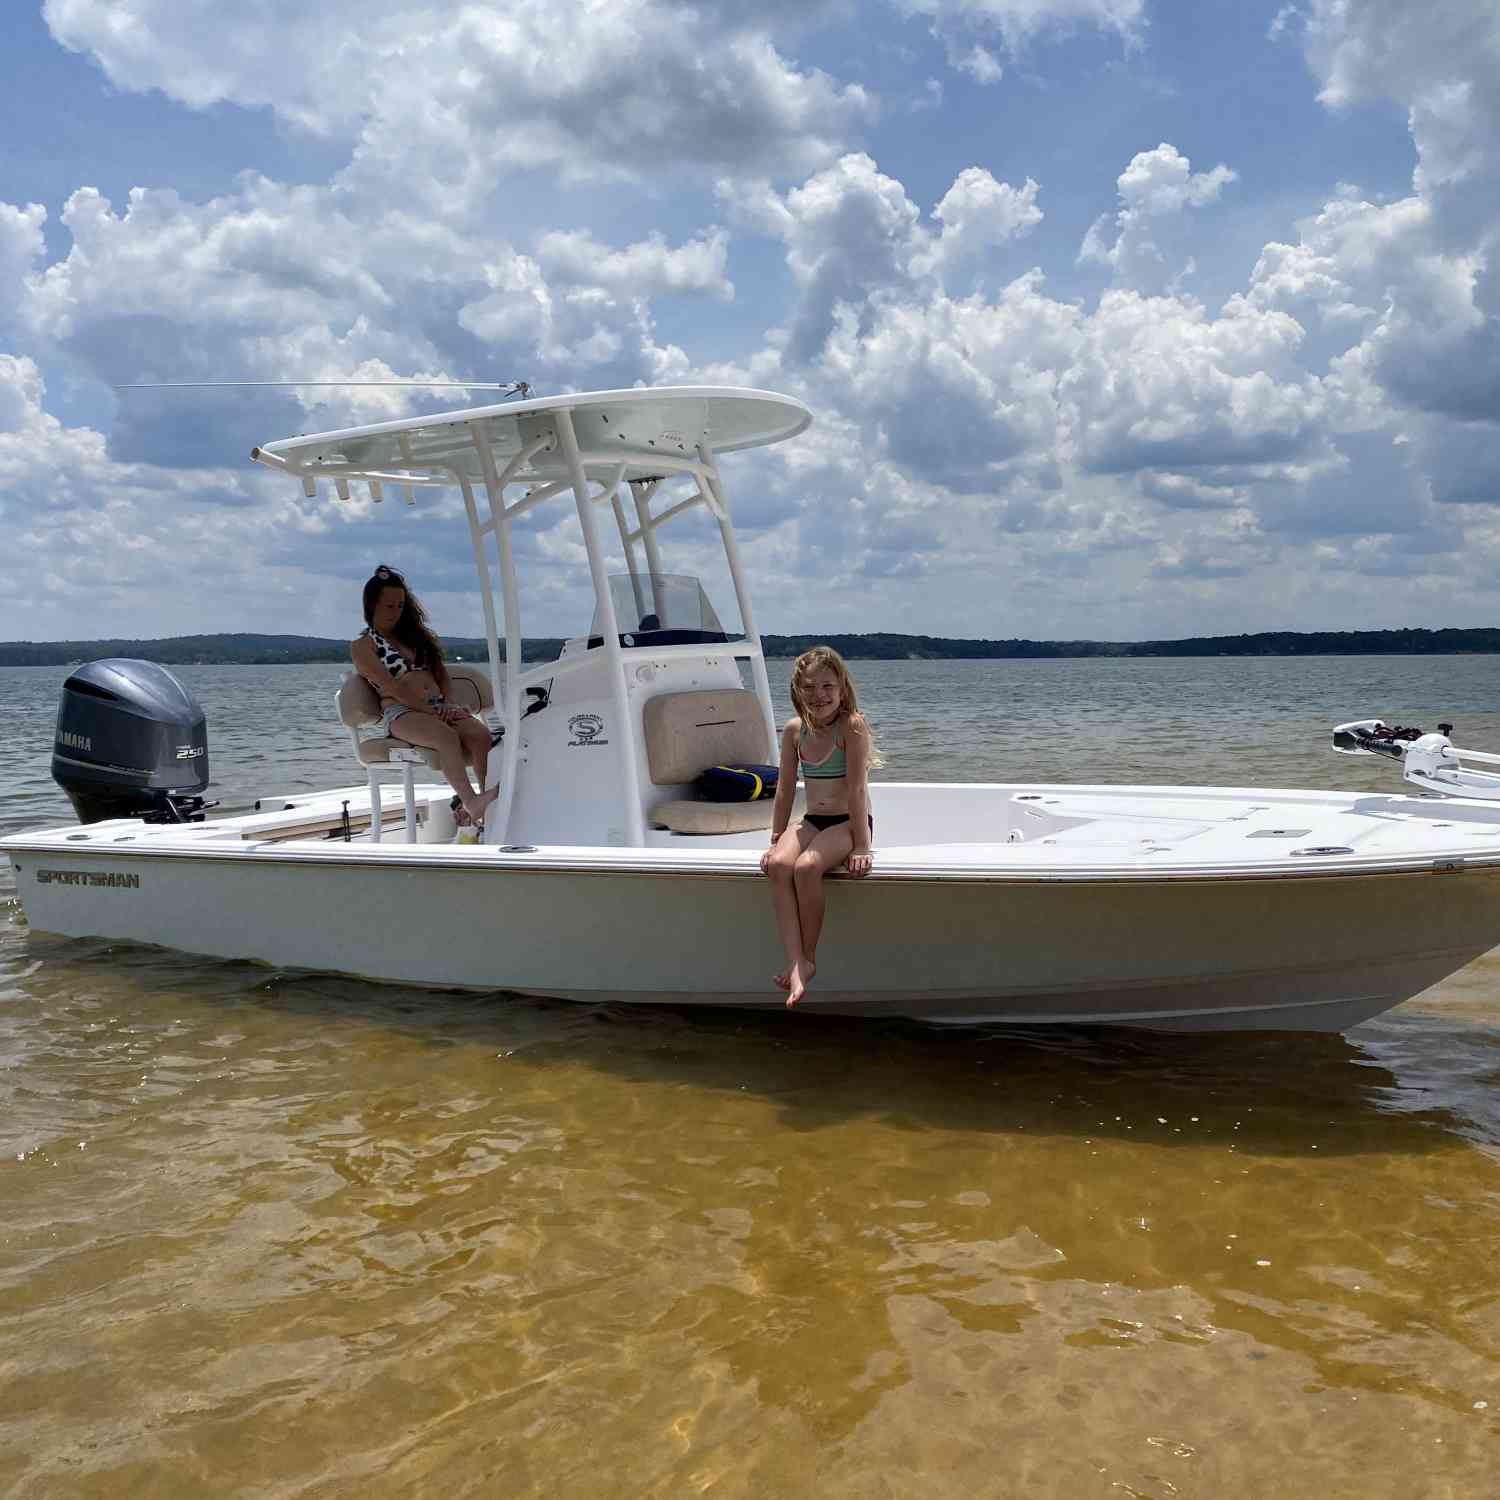 Title: Sportsman Family! - On board their Sportsman Tournament 234 Bay Boat - Location: Lake Walter F. George, Ft Gaines Ga.. Participating in the Photo Contest #SportsmanAugust2020